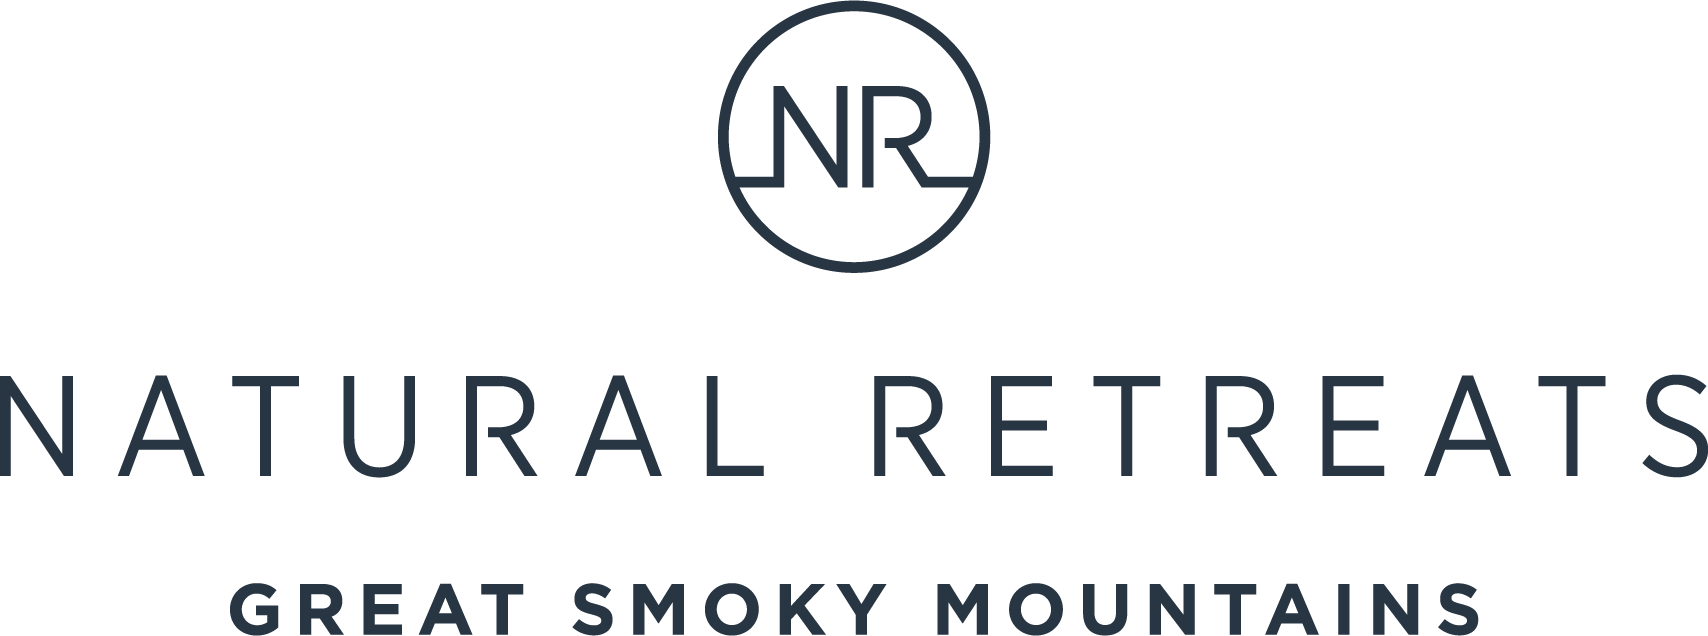 Natural Retreats Great Smoky Mountains